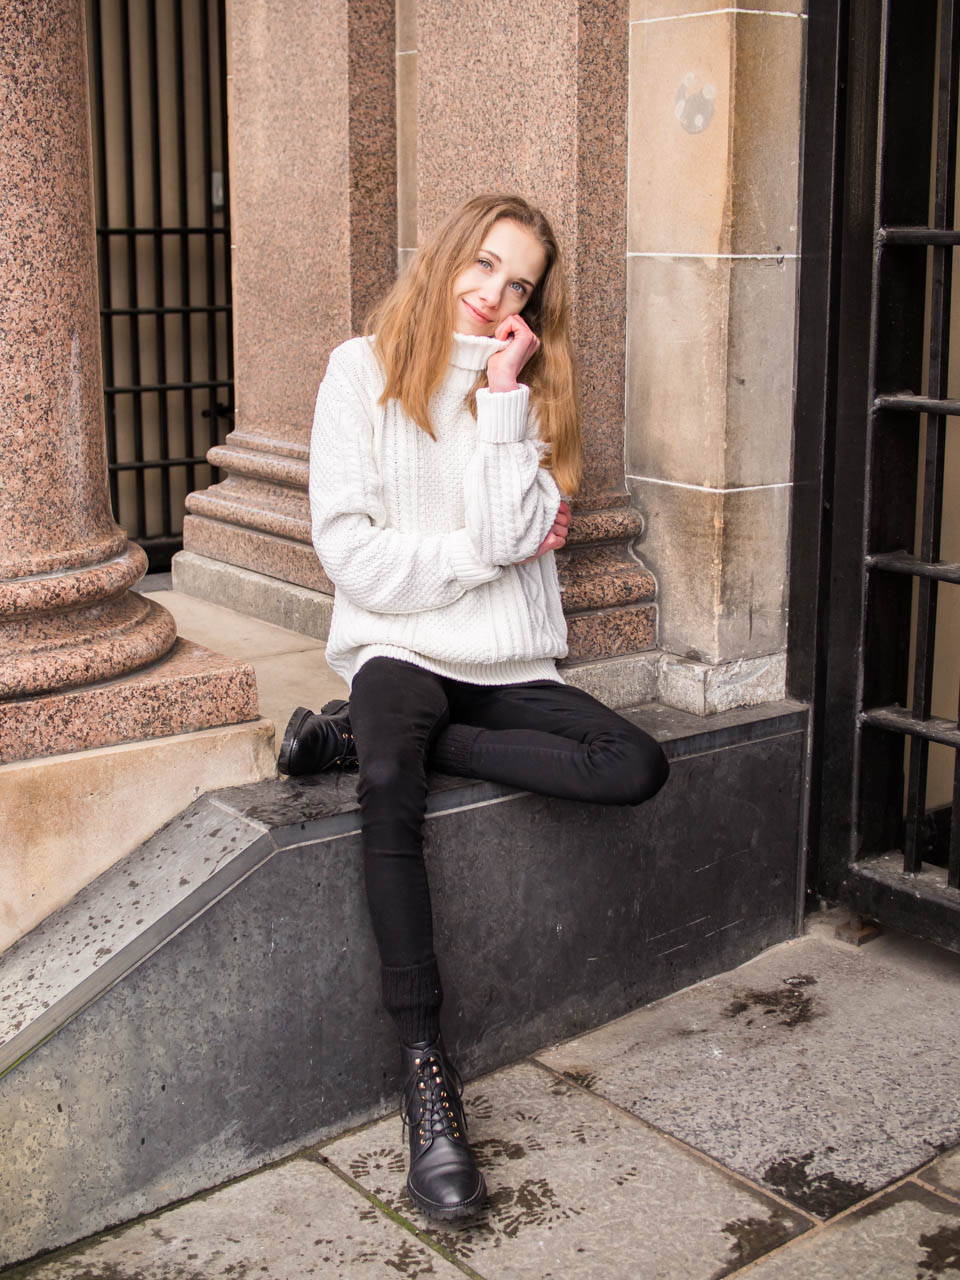 Monochrome outfit with white cable knit - Mustavalkoinen asu palmikkoneuleen kanssa